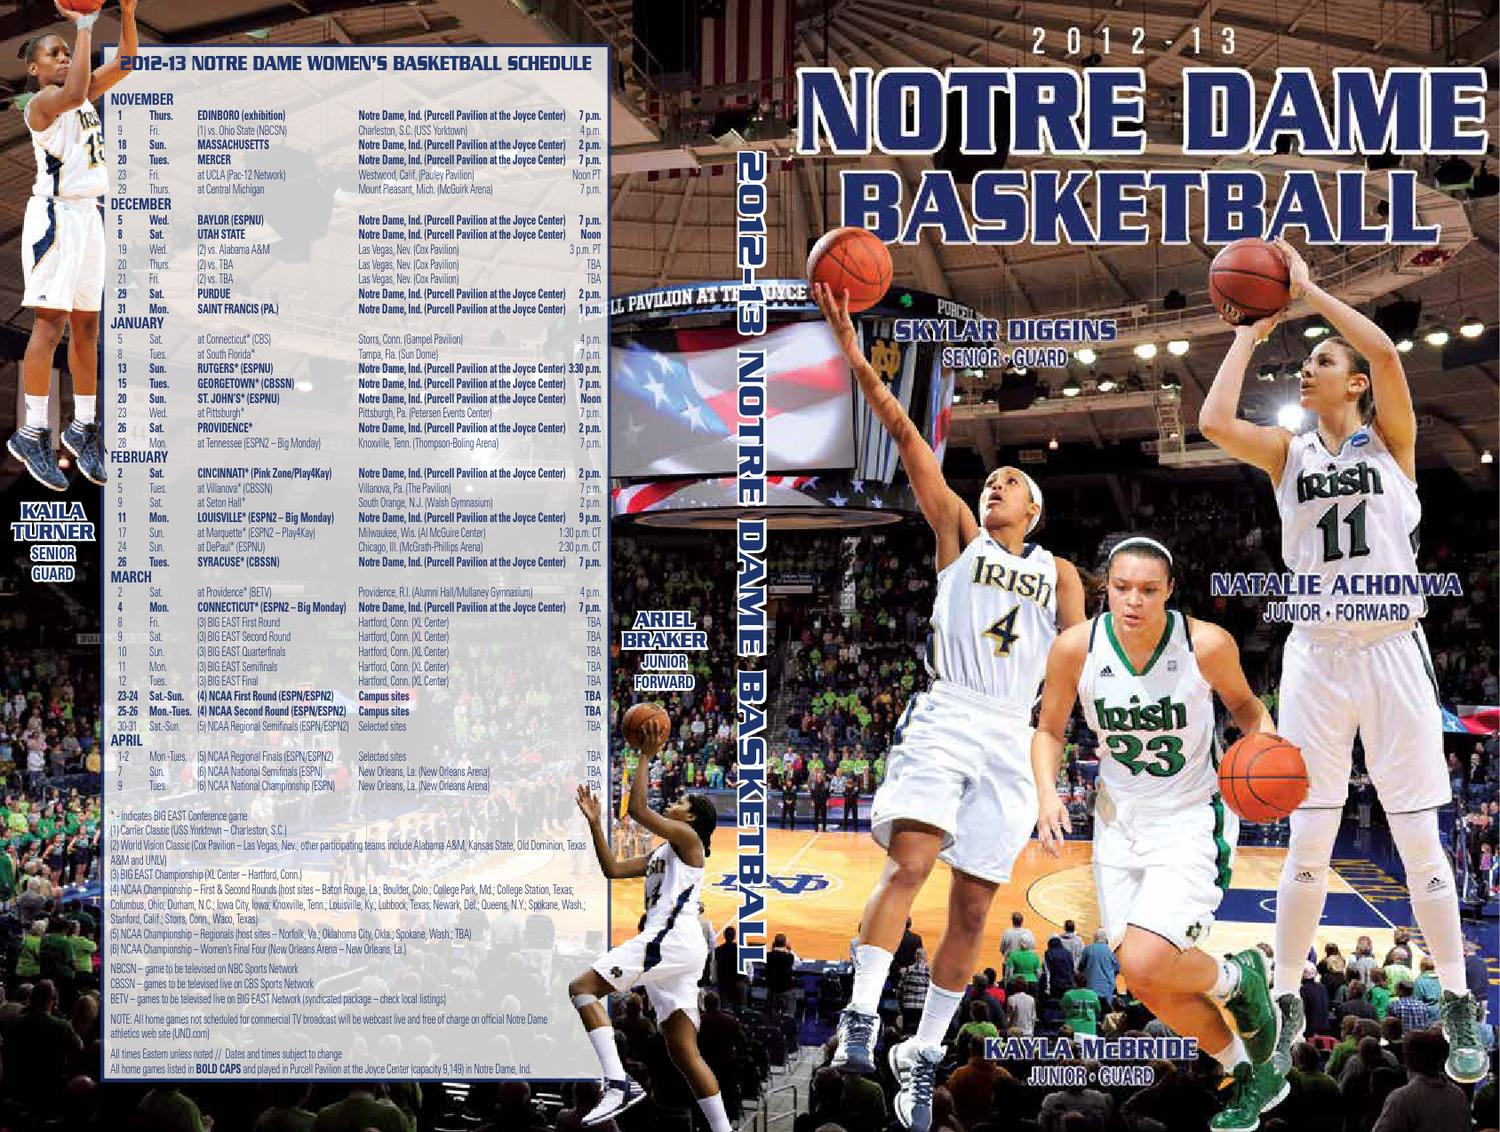 b4439924b 2012-13 Notre Dame Women s Basketball Media Guide by Chris Masters - issuu